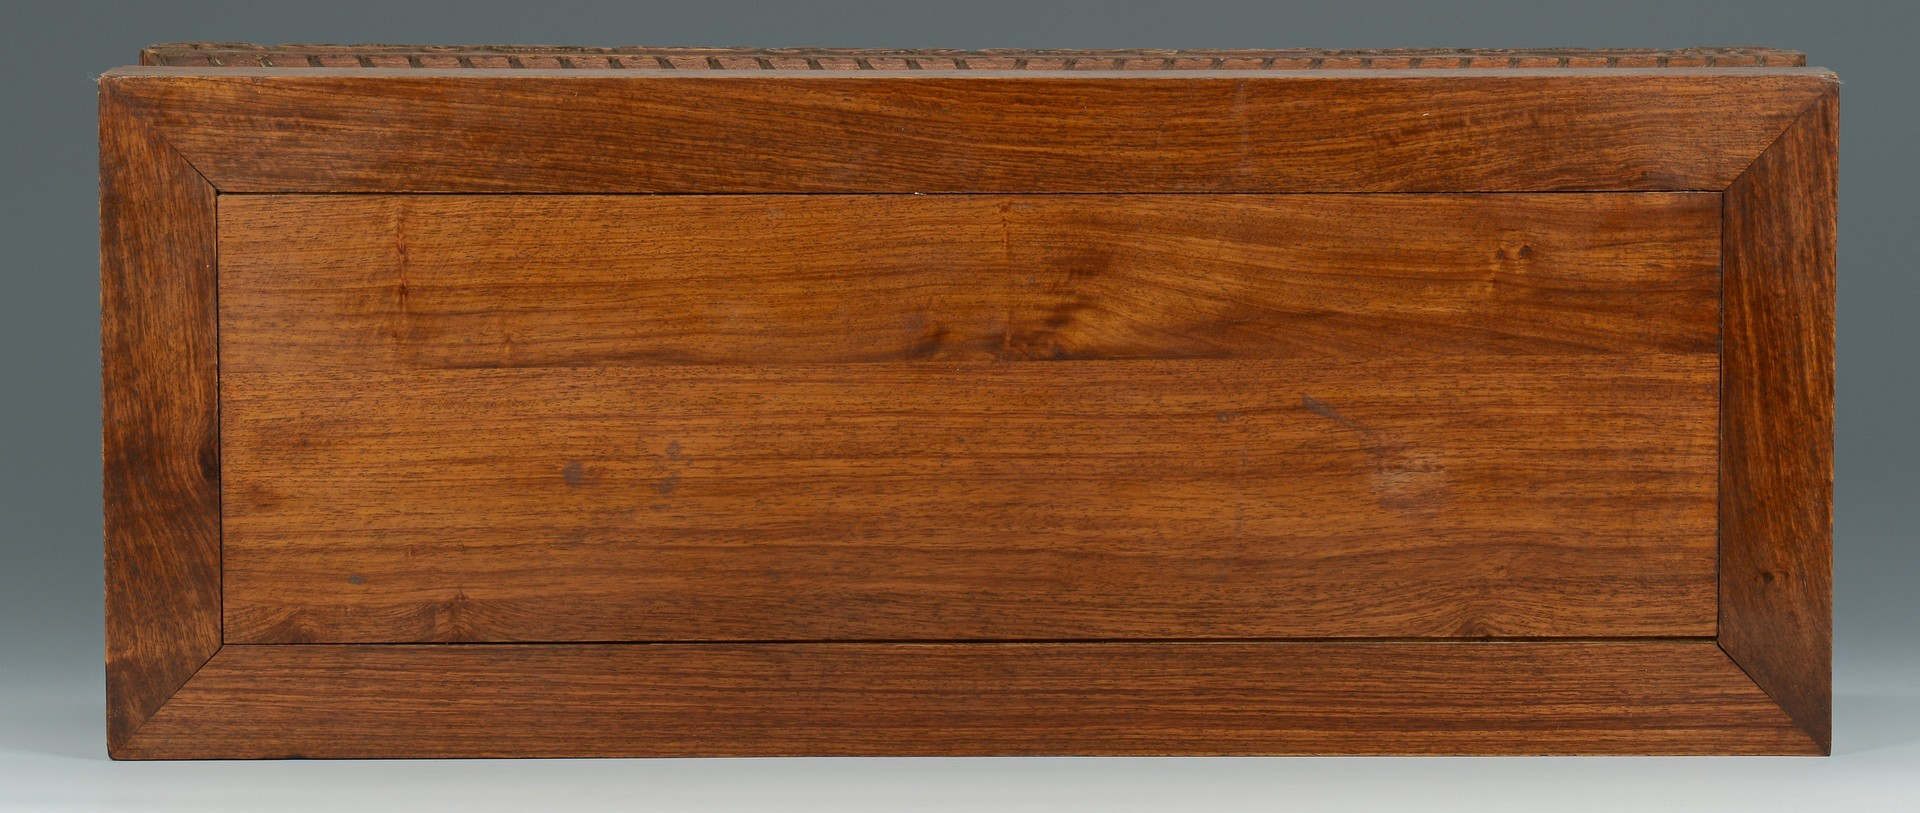 Lot 3383213: Chinese Hardwood Low Table